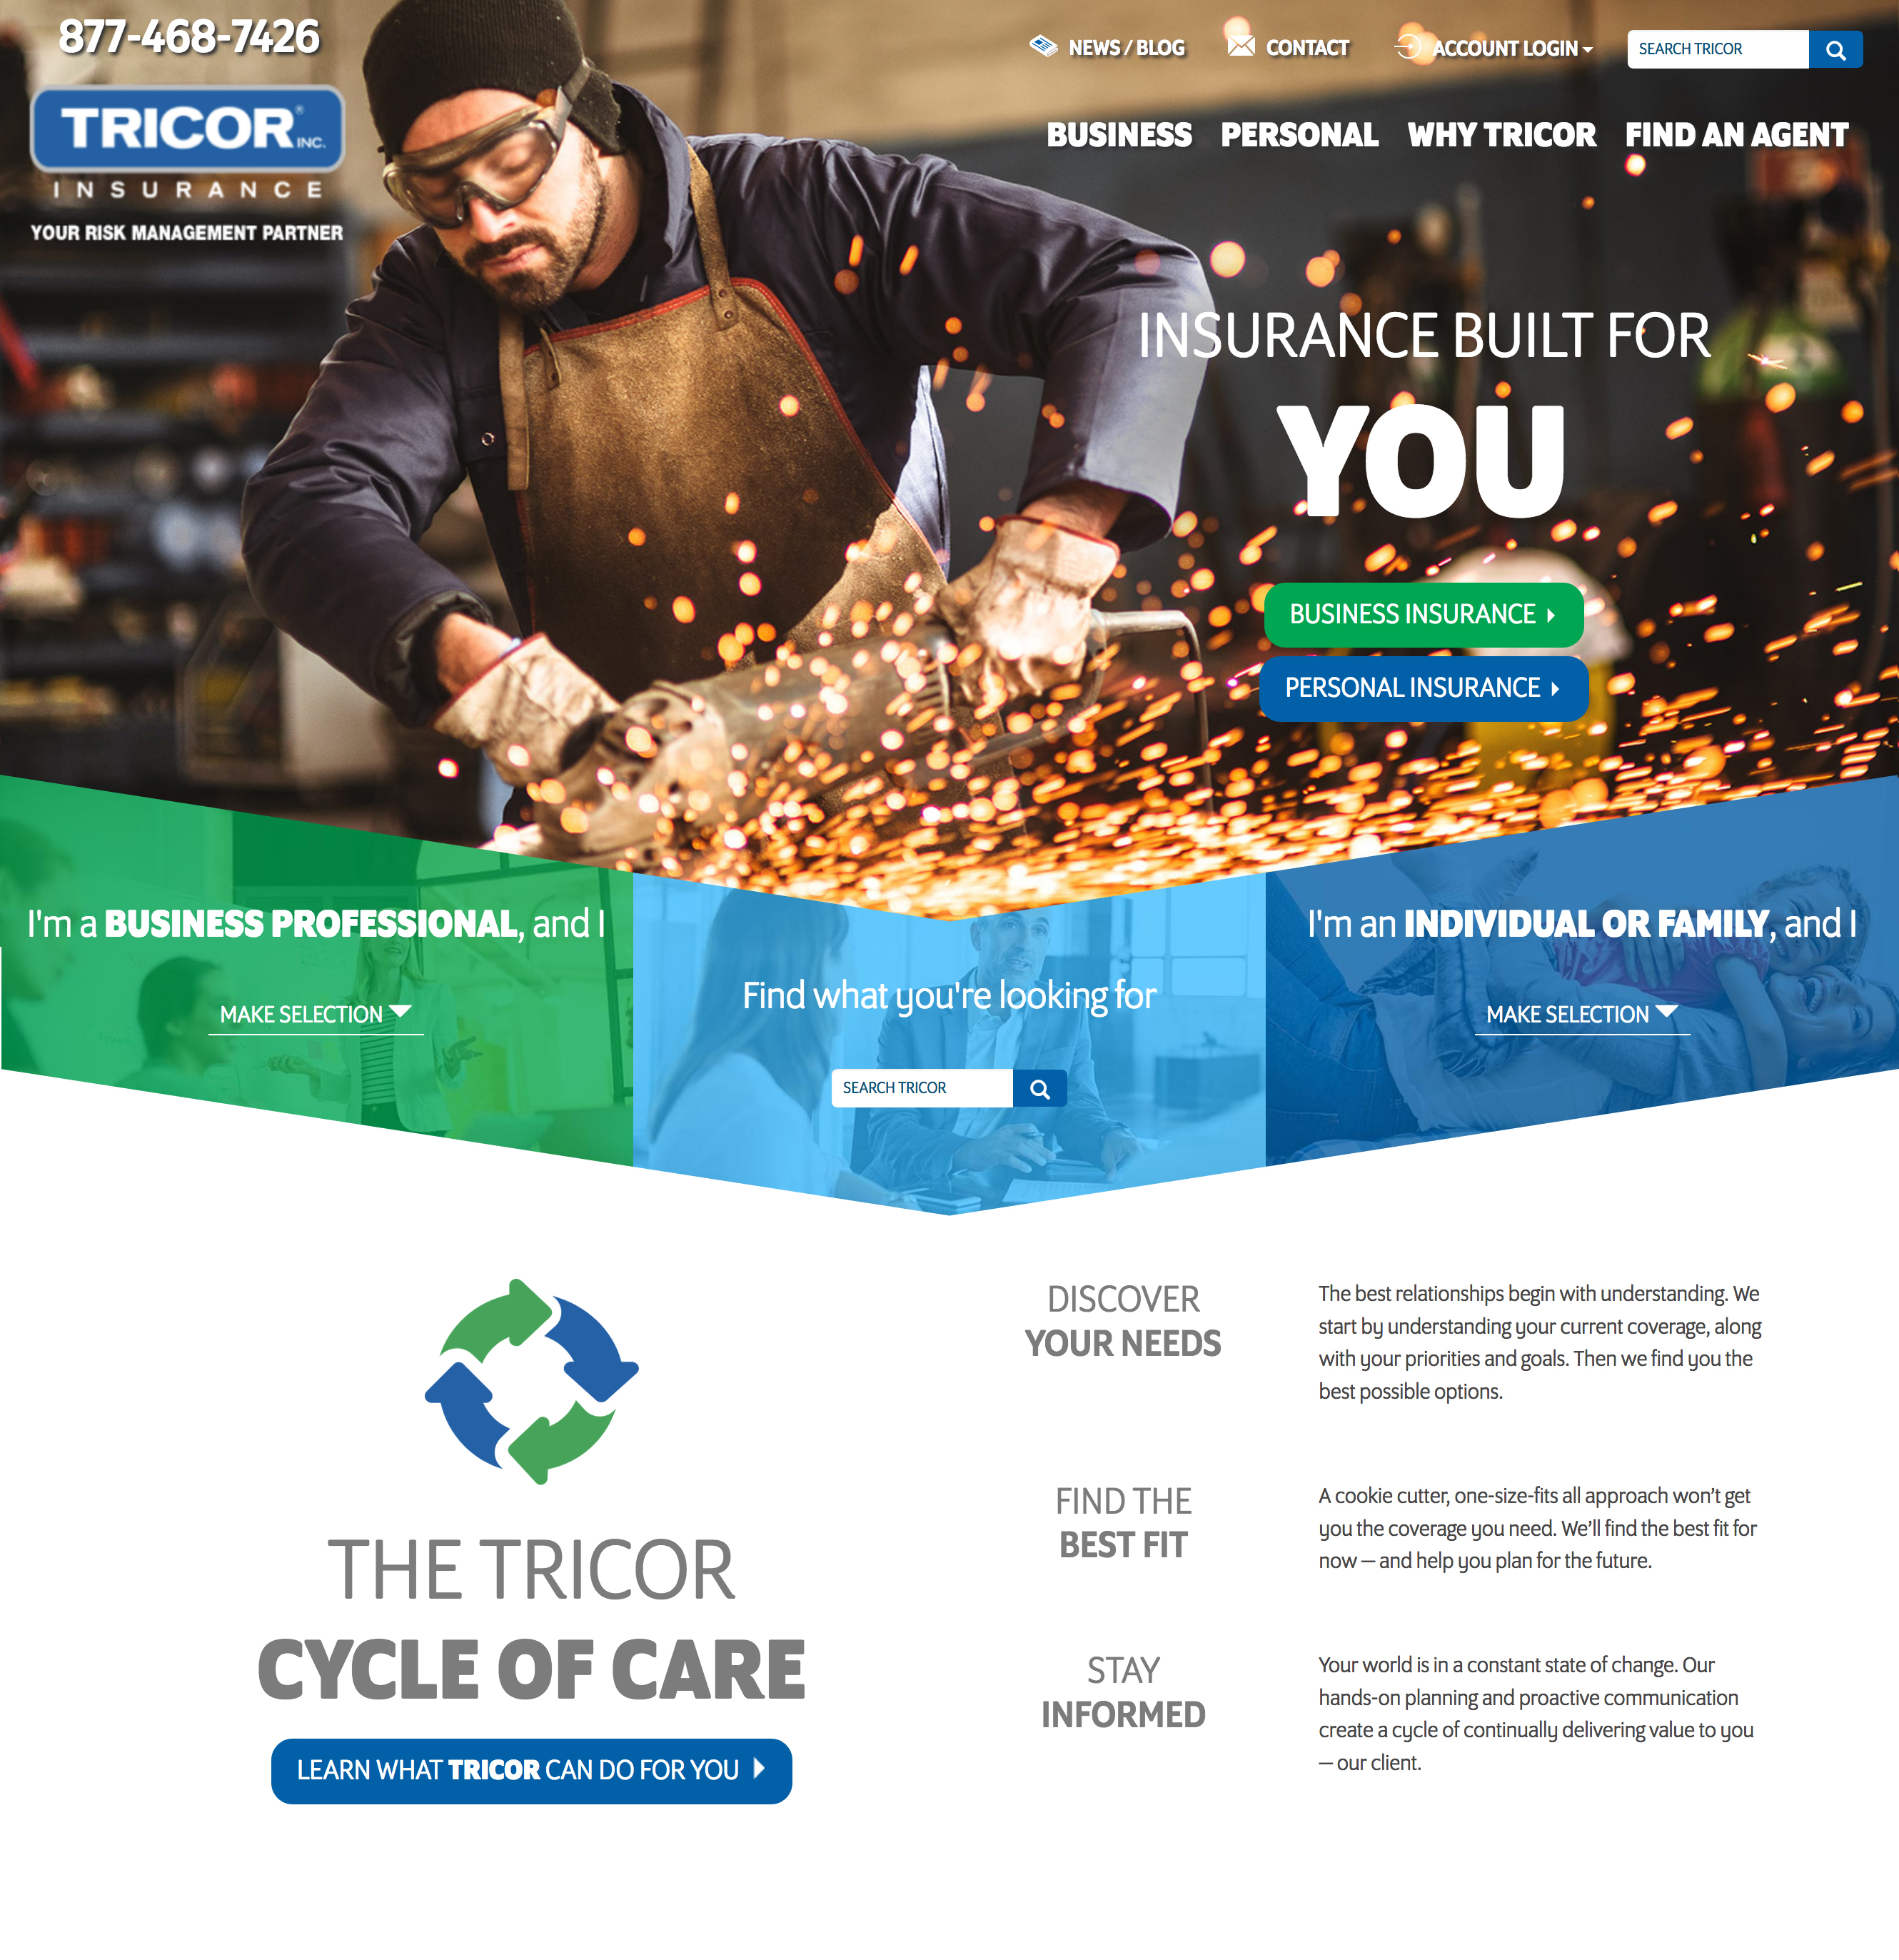 TRICOR Insurance image